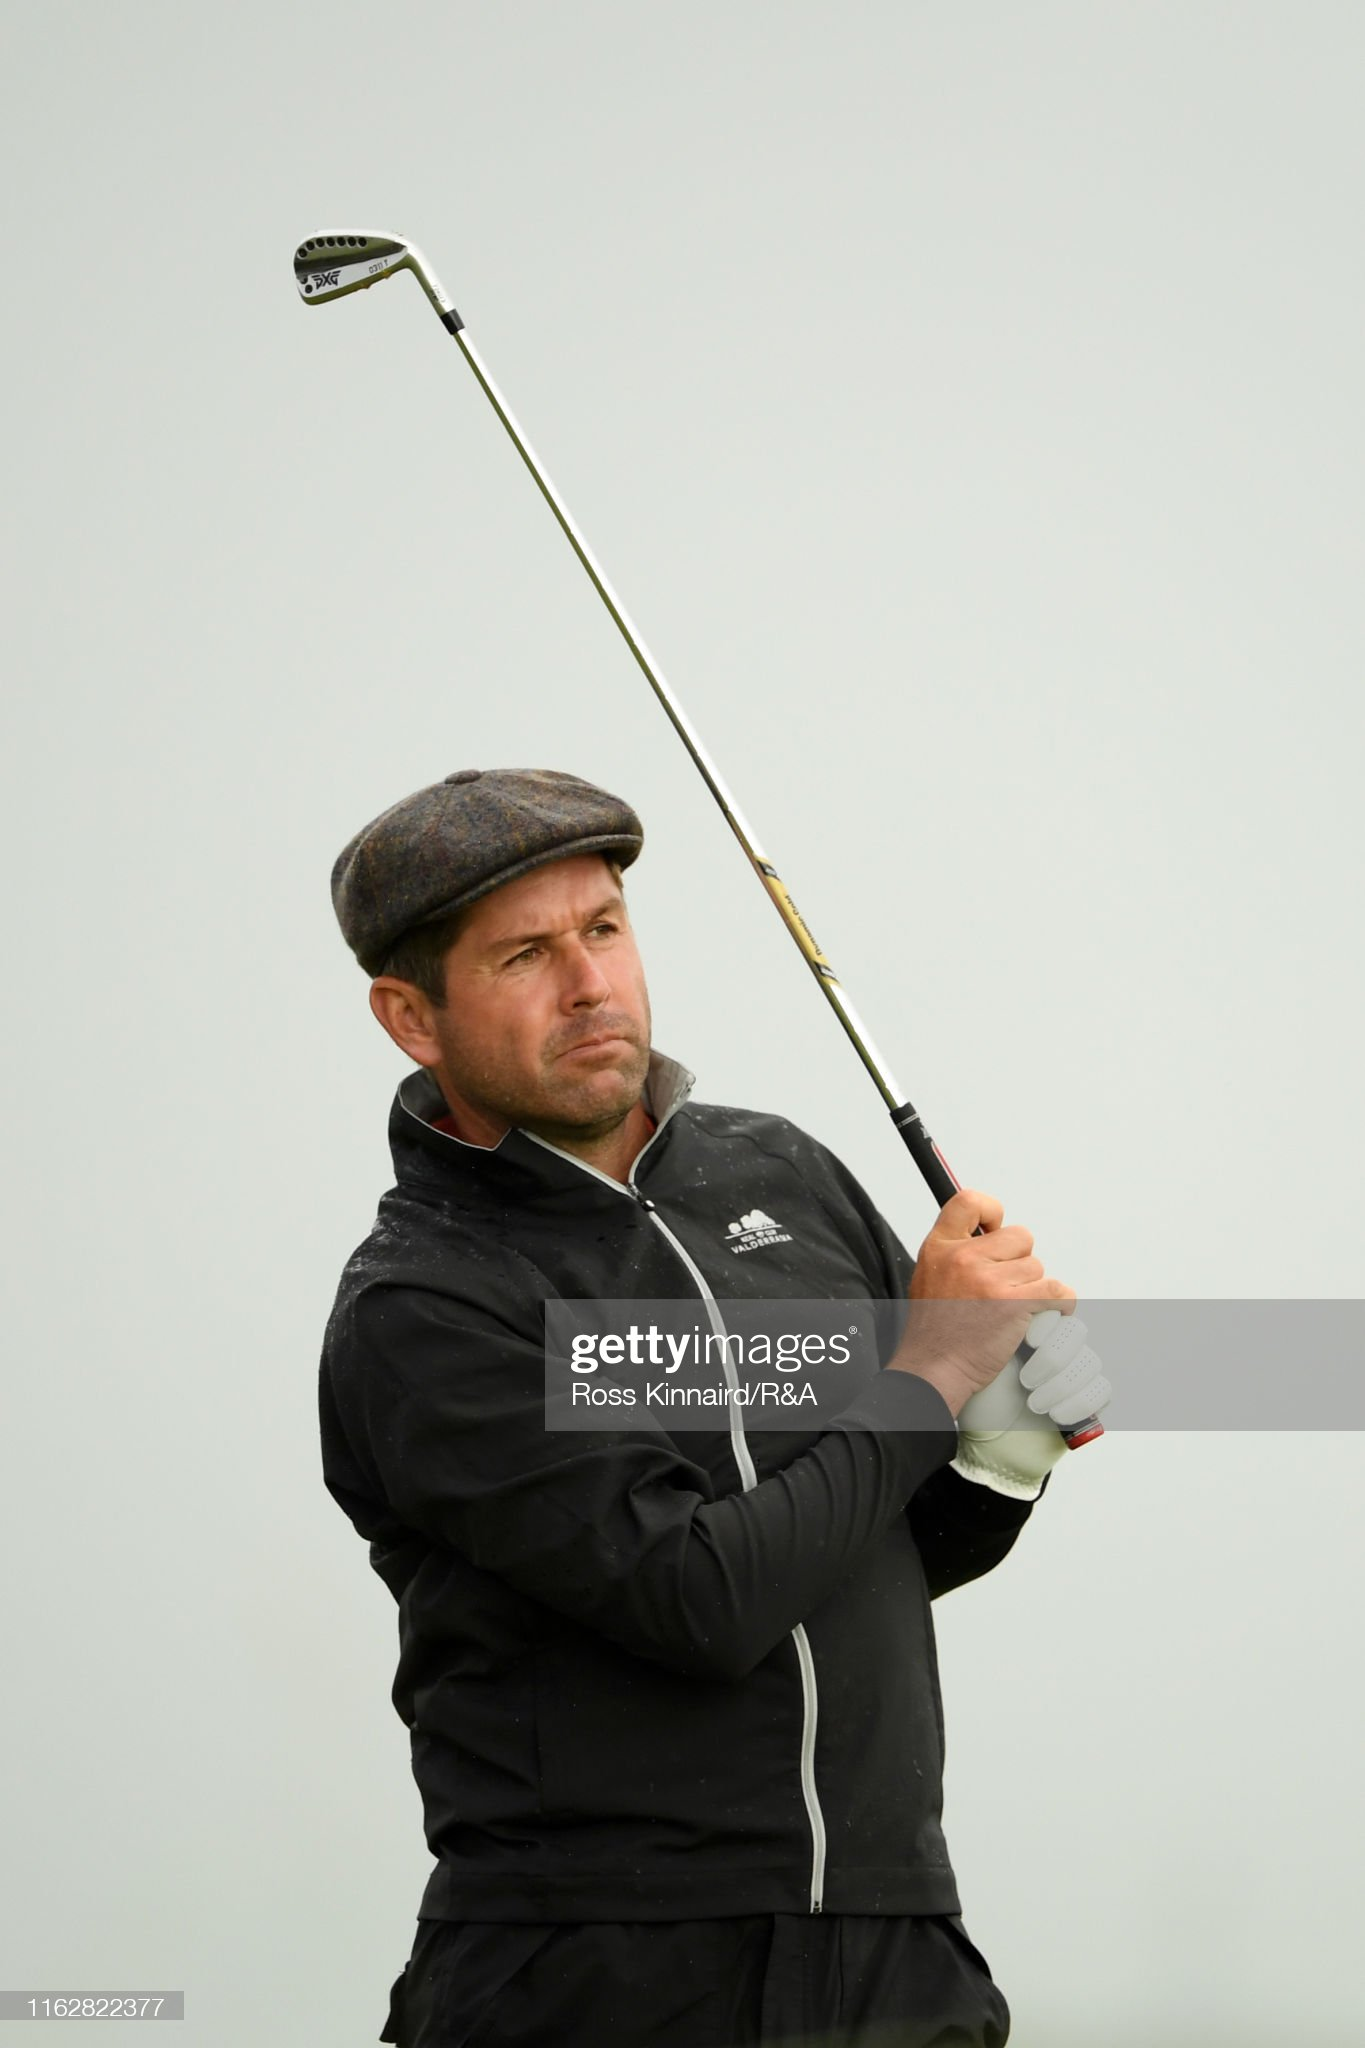 https://media.gettyimages.com/photos/robert-rock-of-england-plays-his-shot-from-the-sixth-tee-during-the-picture-id1162822377?s=2048x2048